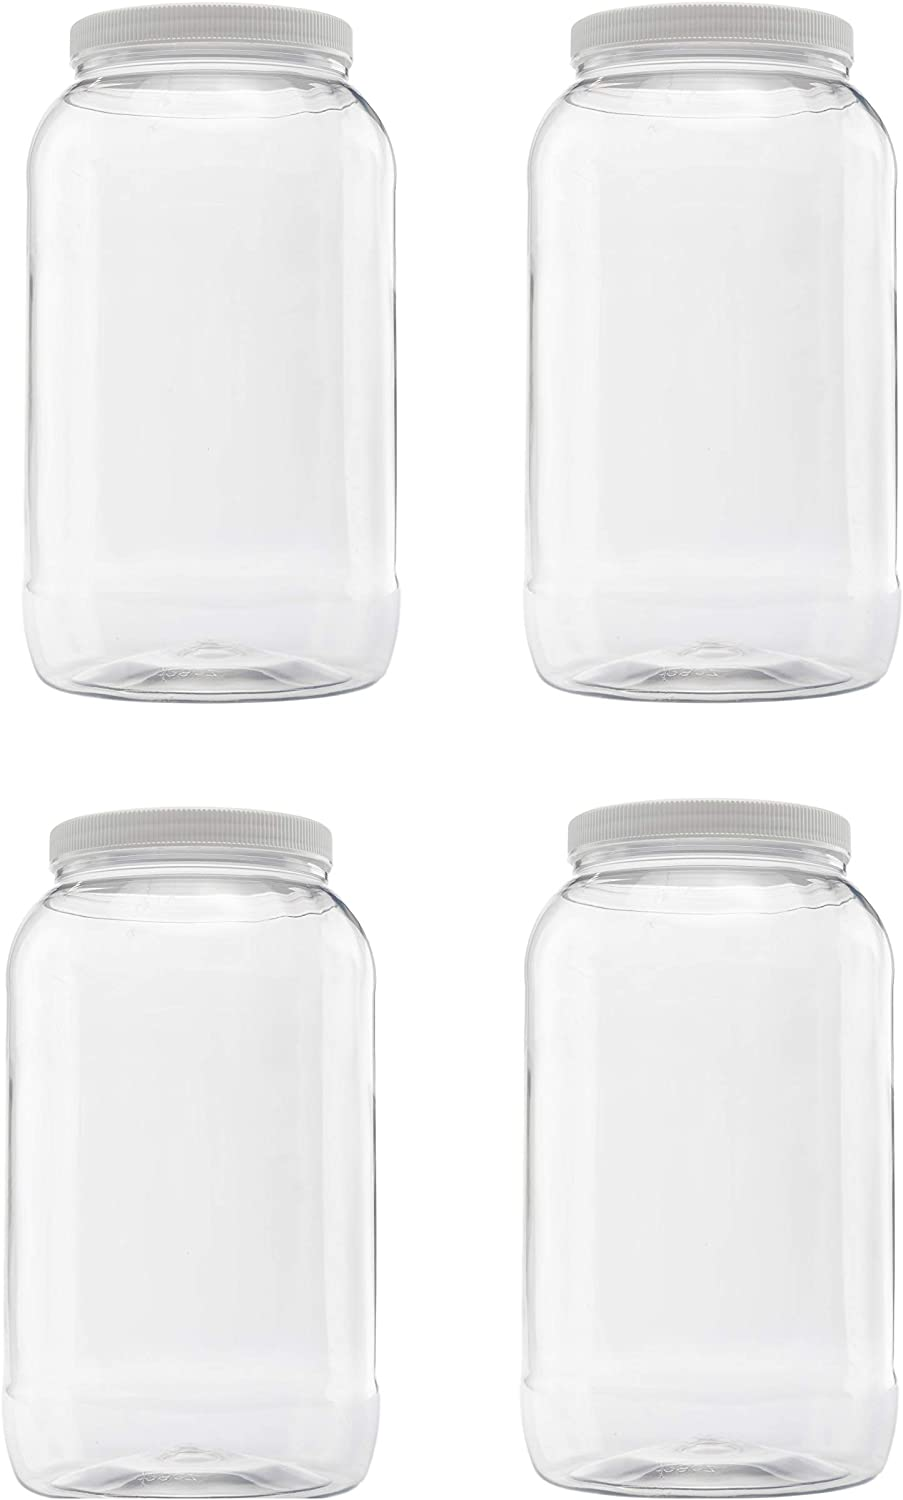 Clearview Containers |128 oz (1 gallon) Plastic Storage Containers w/Lids | Kitchen Canister Set | Food Storage Jars | Airtight Pantry Containers | Flour, Oats, Peanut Butter, Honey, Jams | Set of 4